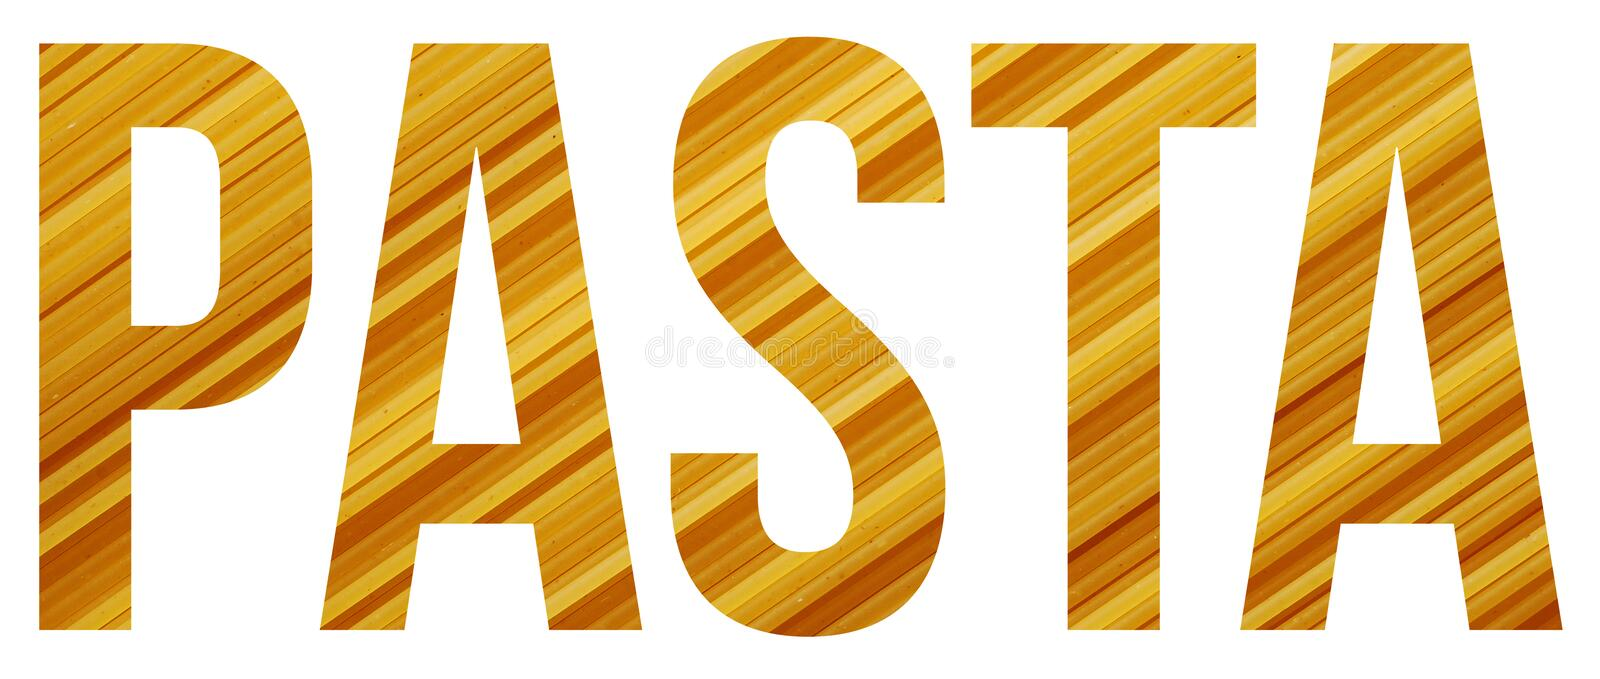 Pasta Stock Image Image Of Font Copyspace Abstract 98711399